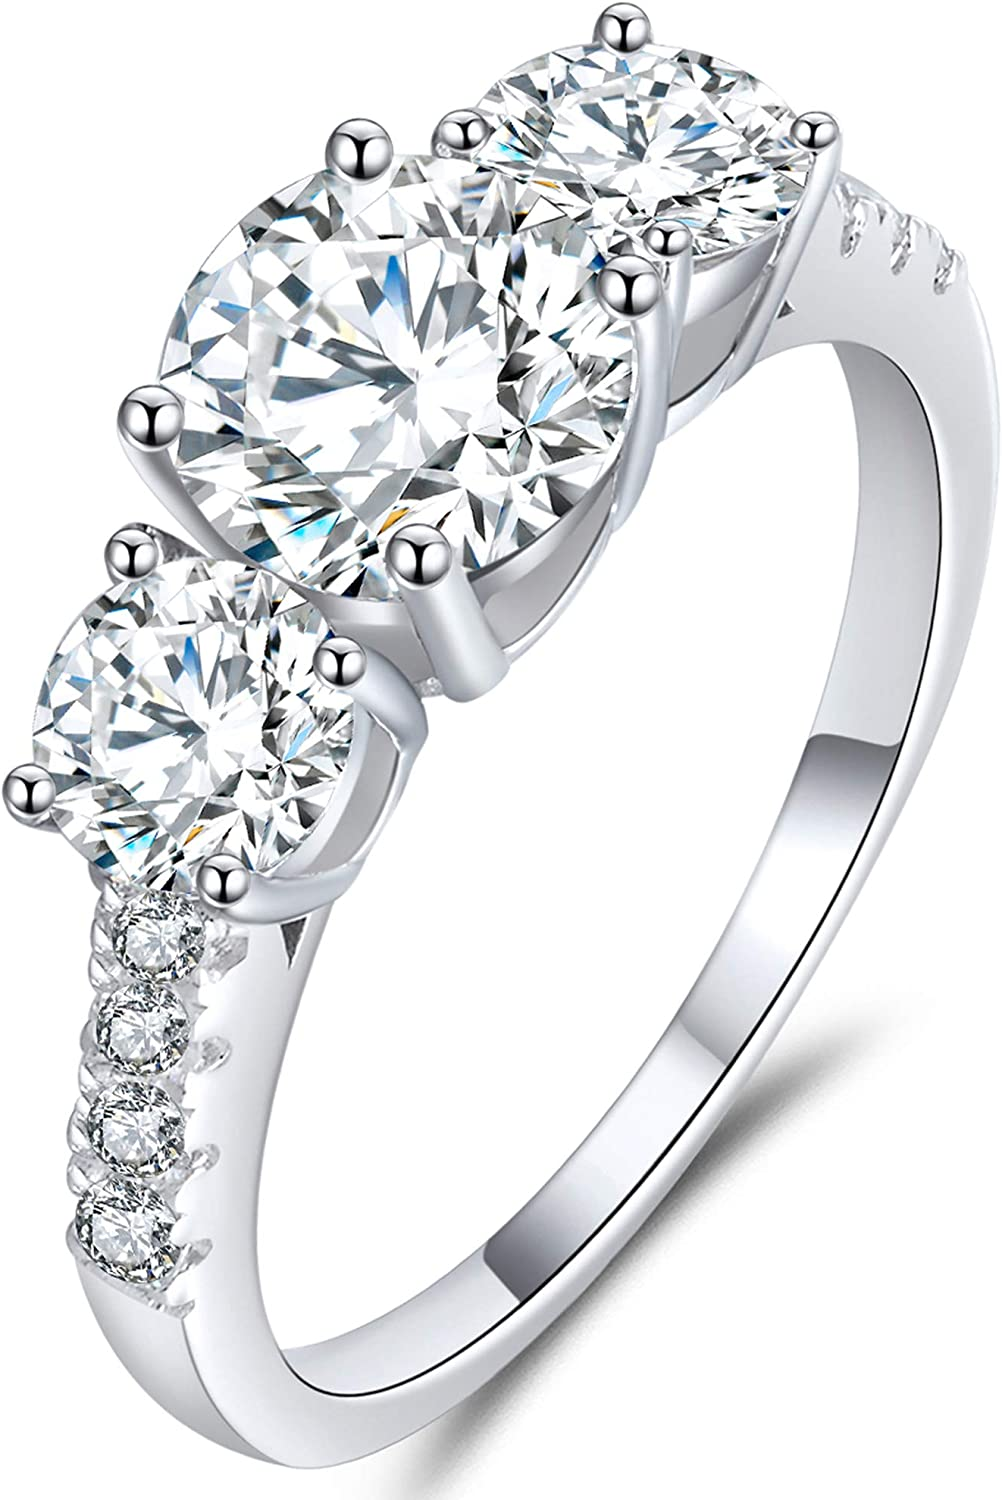 GEM DE LUXE 3ct Center 8.0mm with D Color Platinum Plated Silver Plating 18k White Gold Three Stone Moissanite Engagement Ring with Accents VVS1 Clarity 2.3mm Band Jewelry Gifts